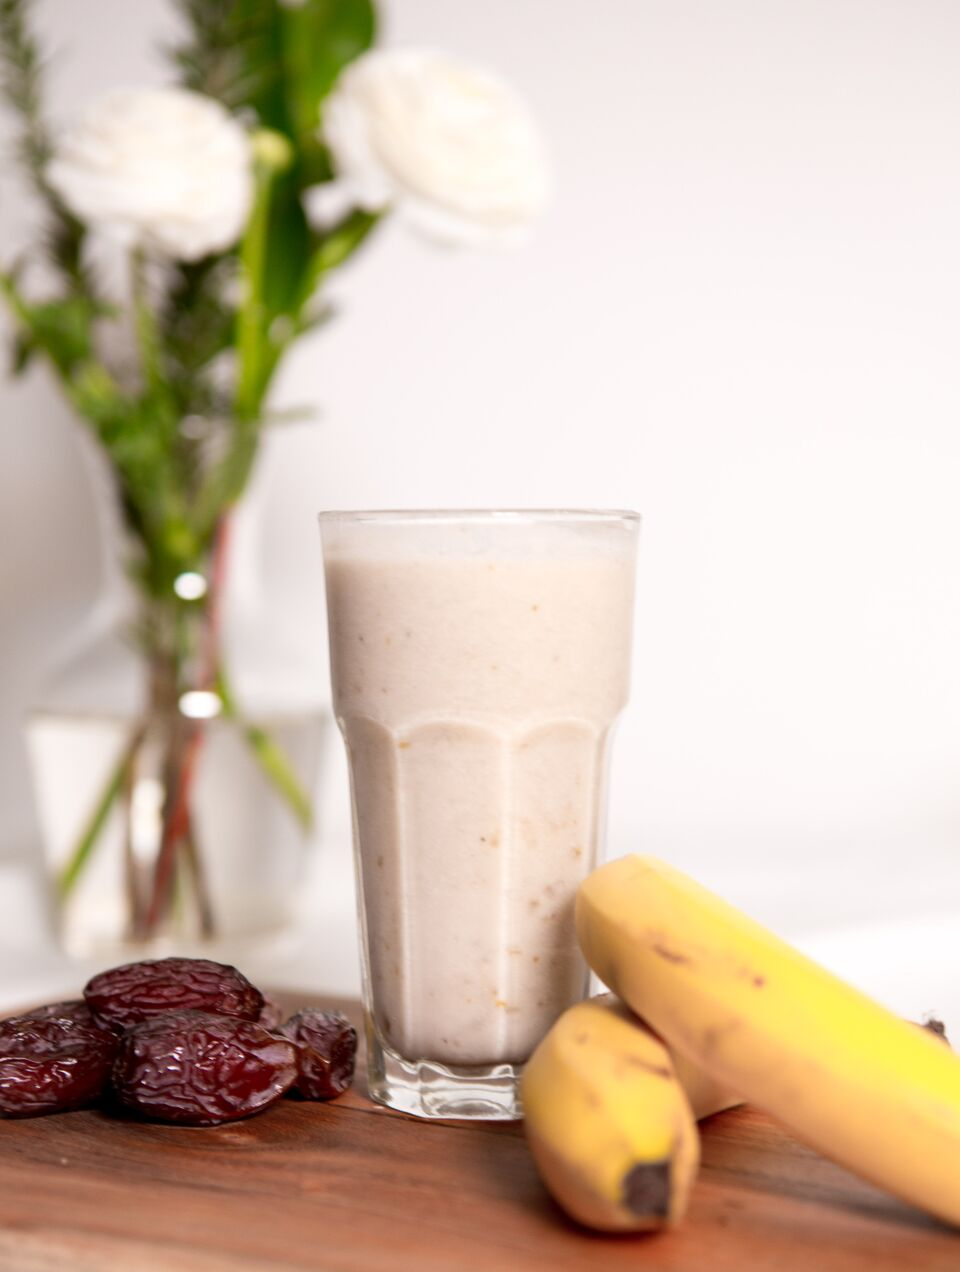 3 ways your accidentally making your smoothie less healthy - natalie brady.jpeg